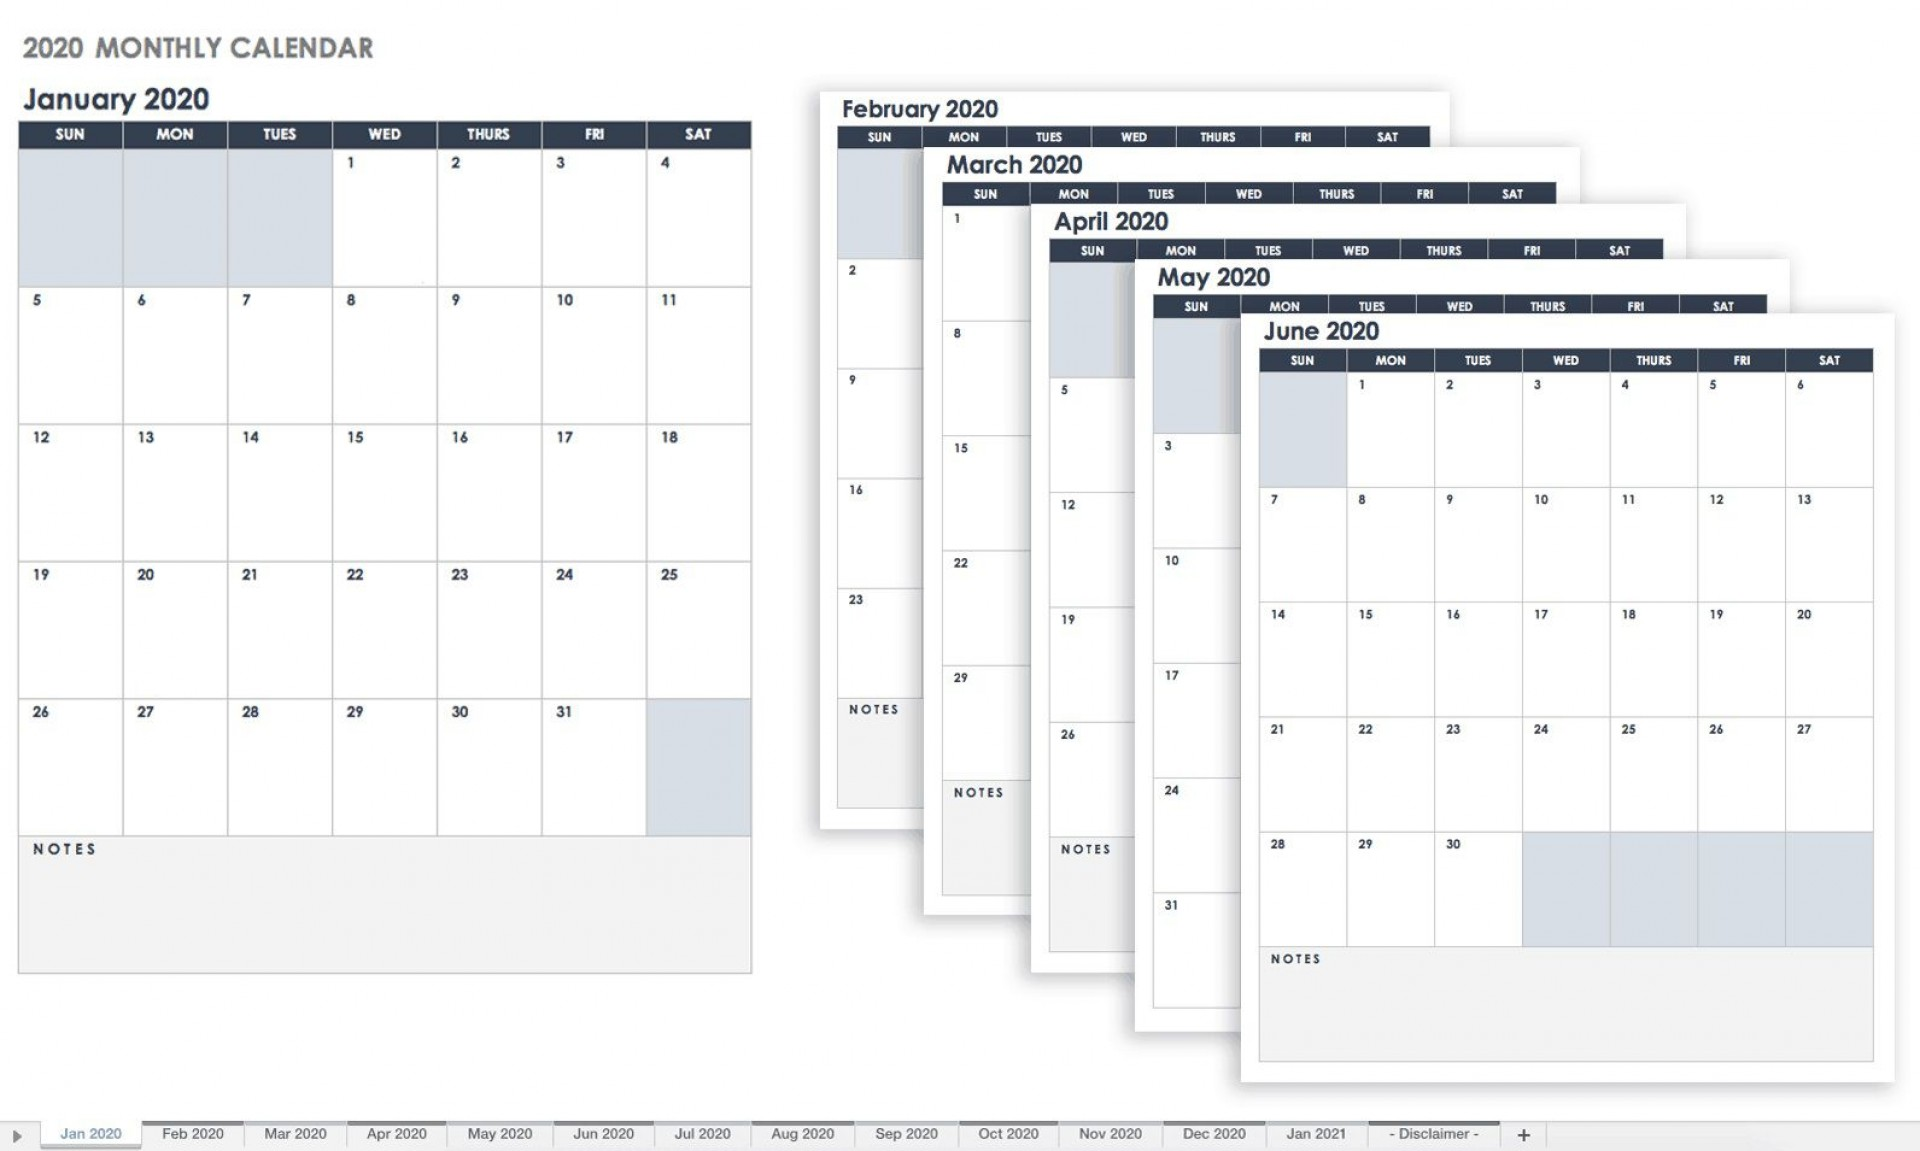 009 Impressive Free Calendar Template Excel Highest Clarity  Monthly 2020 Perpetual 20191920